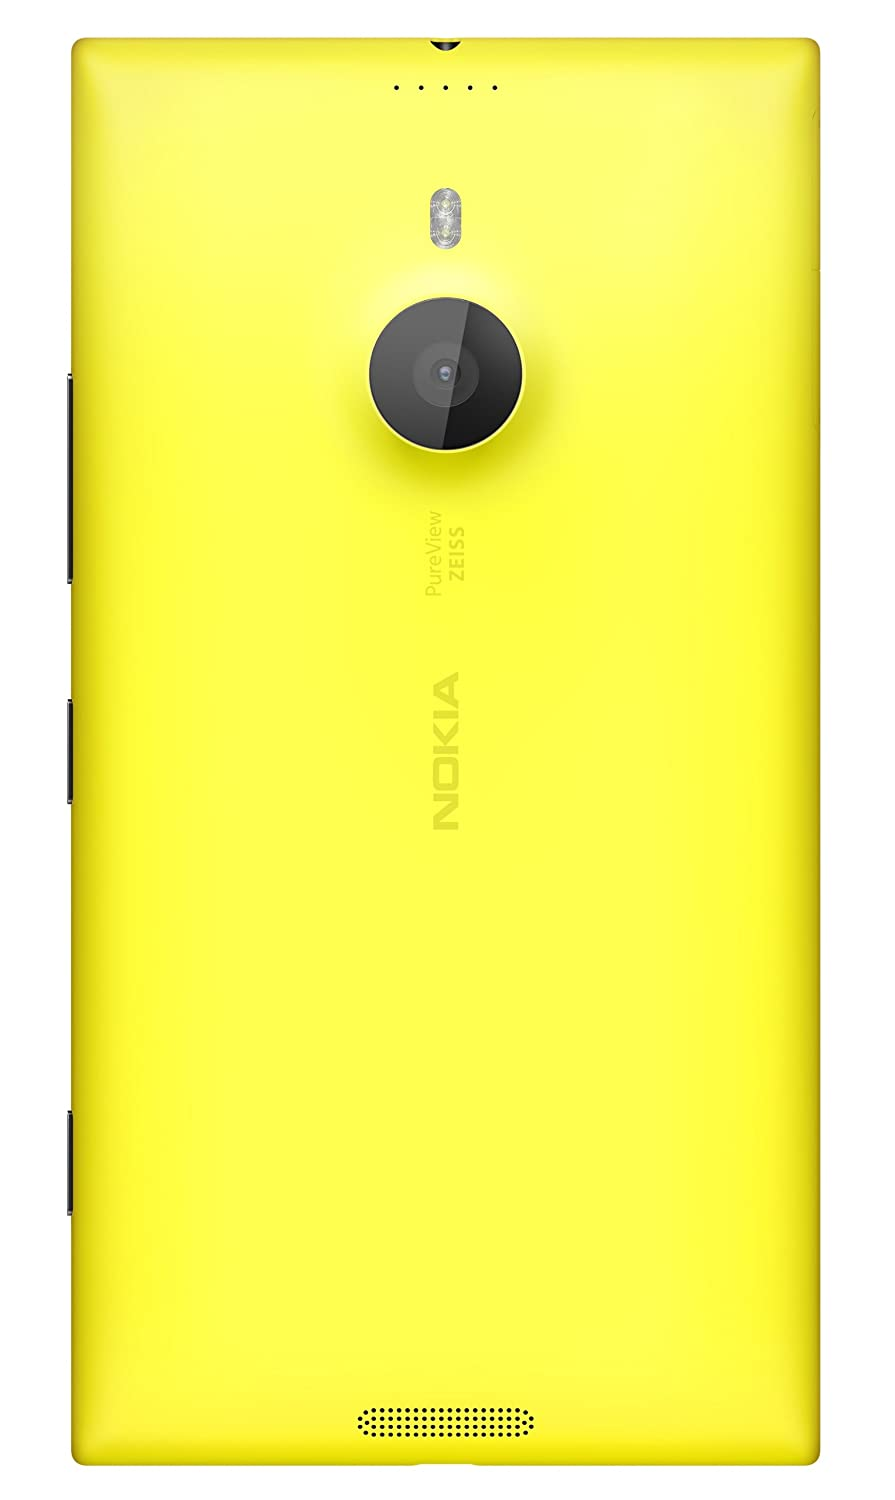 Nokia Lumia 1520 16gb Unlocked Gsm 4g Lte Windows Xl Yellow Smartphone W 20mp Camera Pureview Technology No Warranty Cell Phones